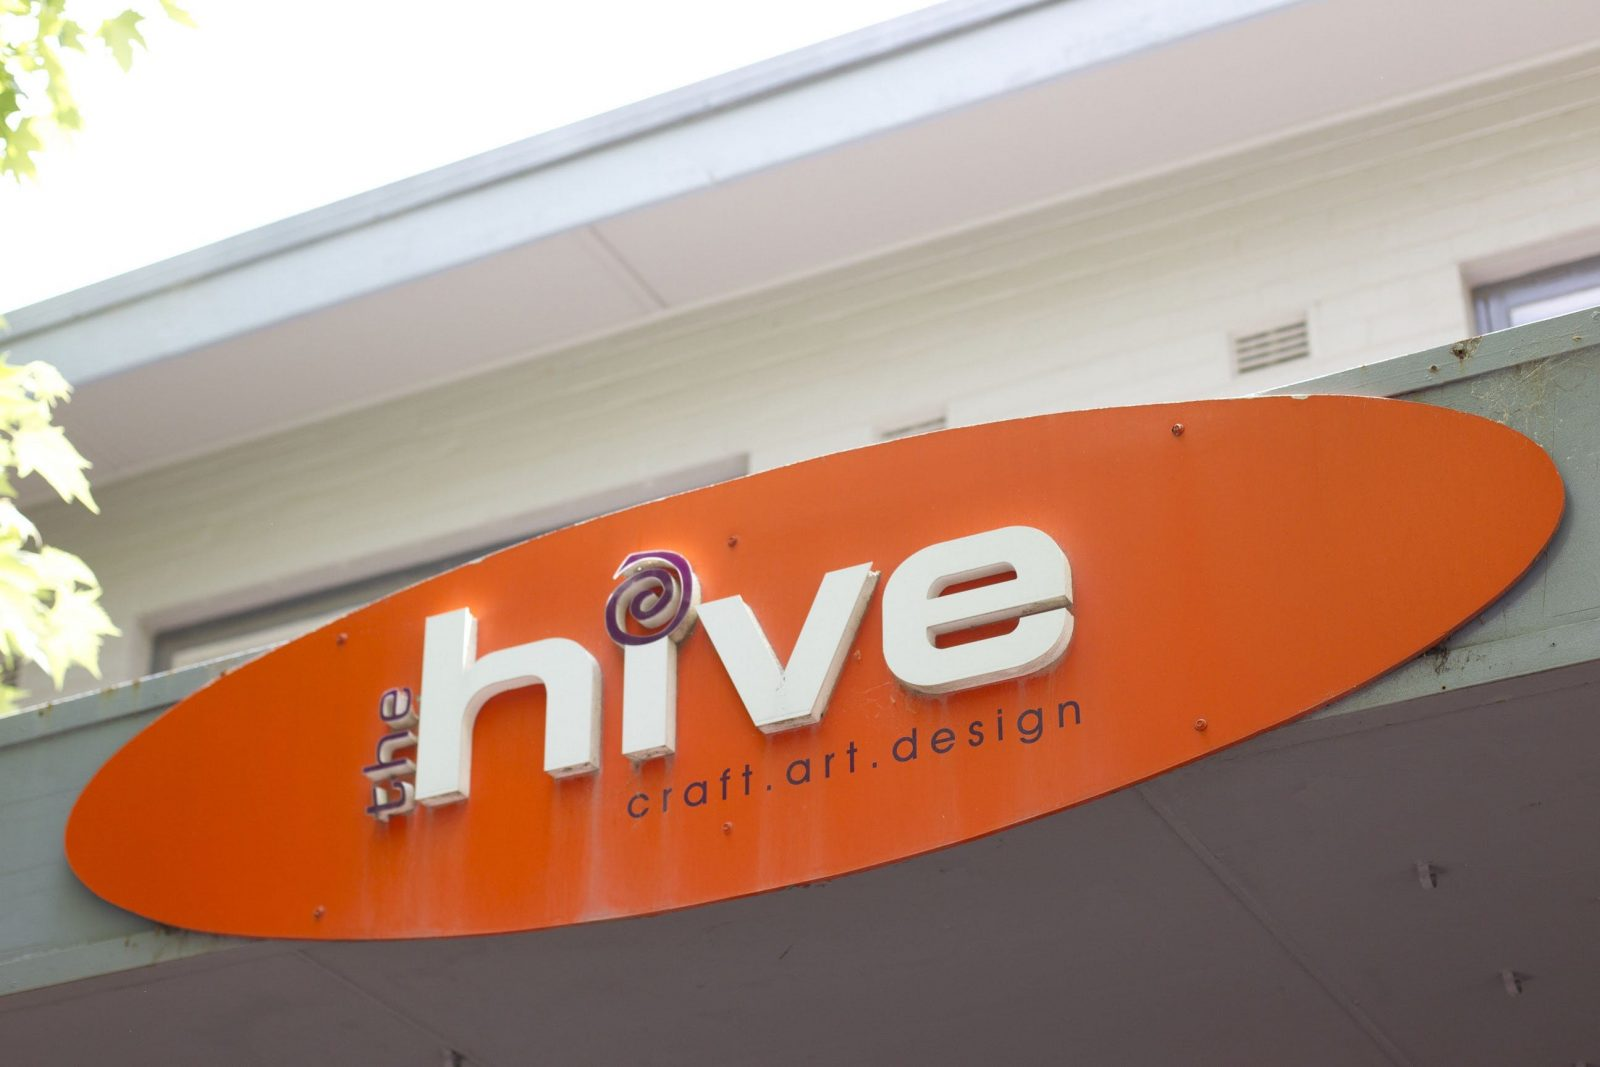 The Hive sign